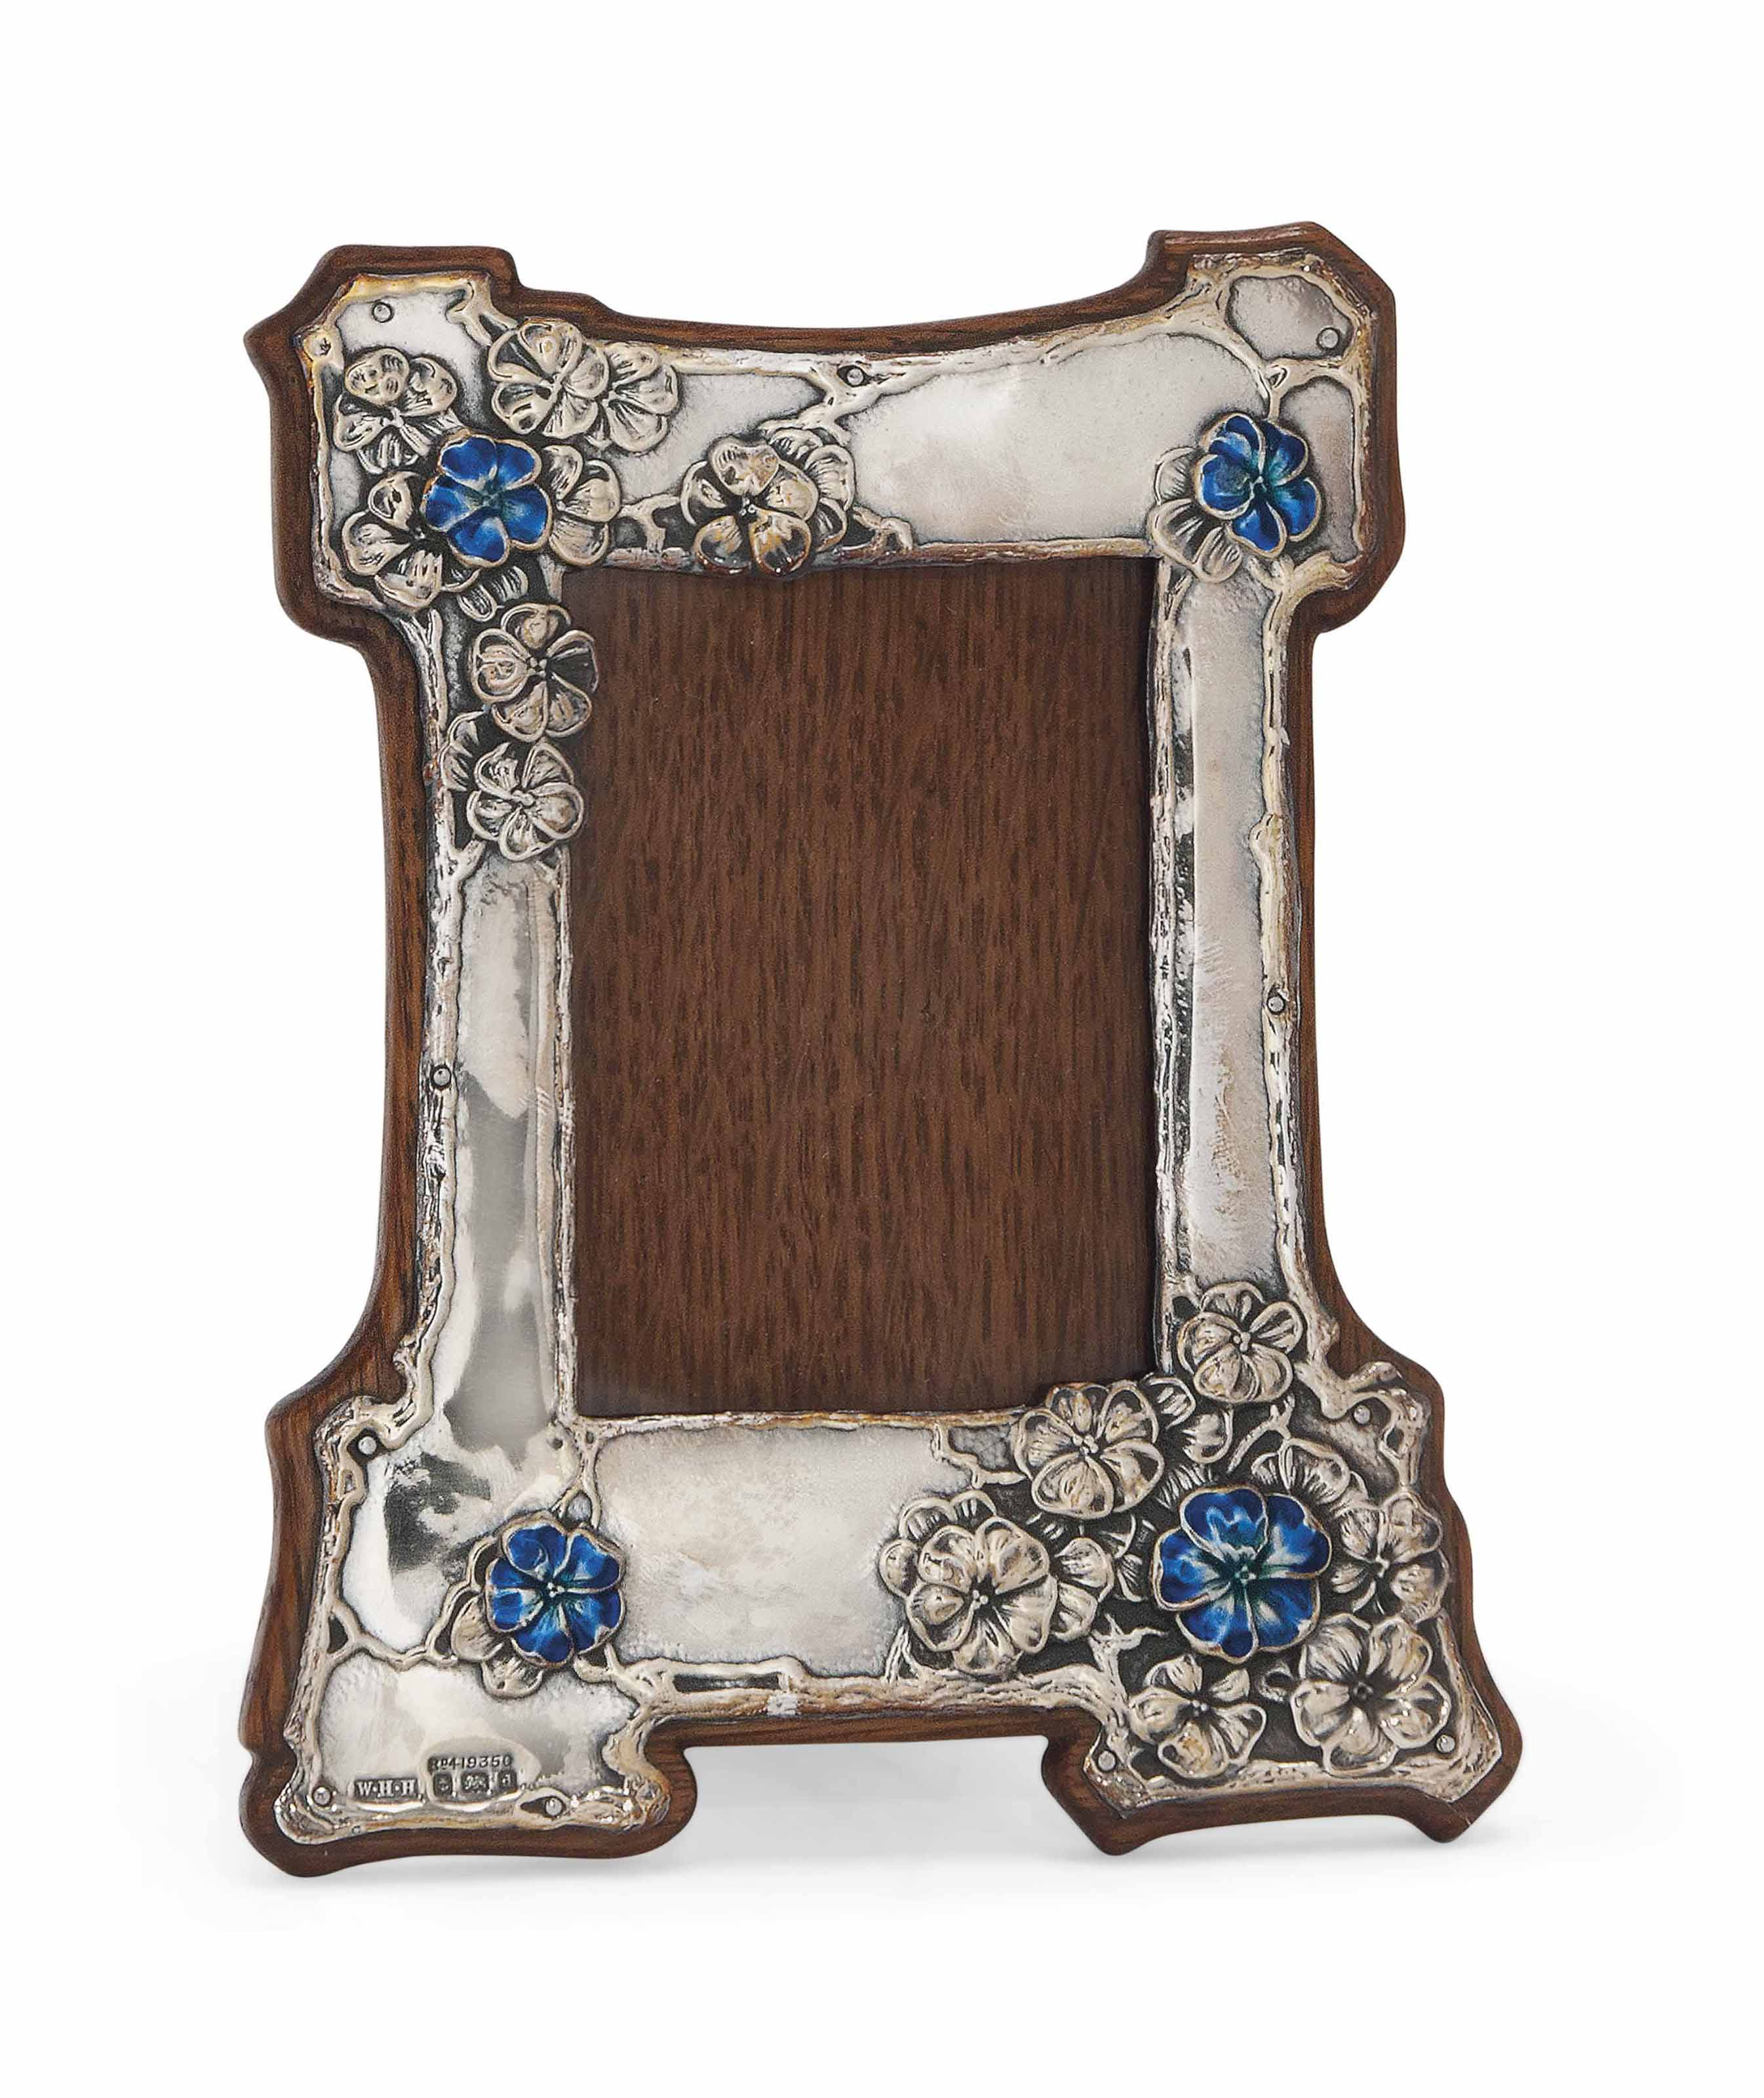 A W.H. HASELER SILVER AND ENAMEL PHOTOGRAPH FRAME